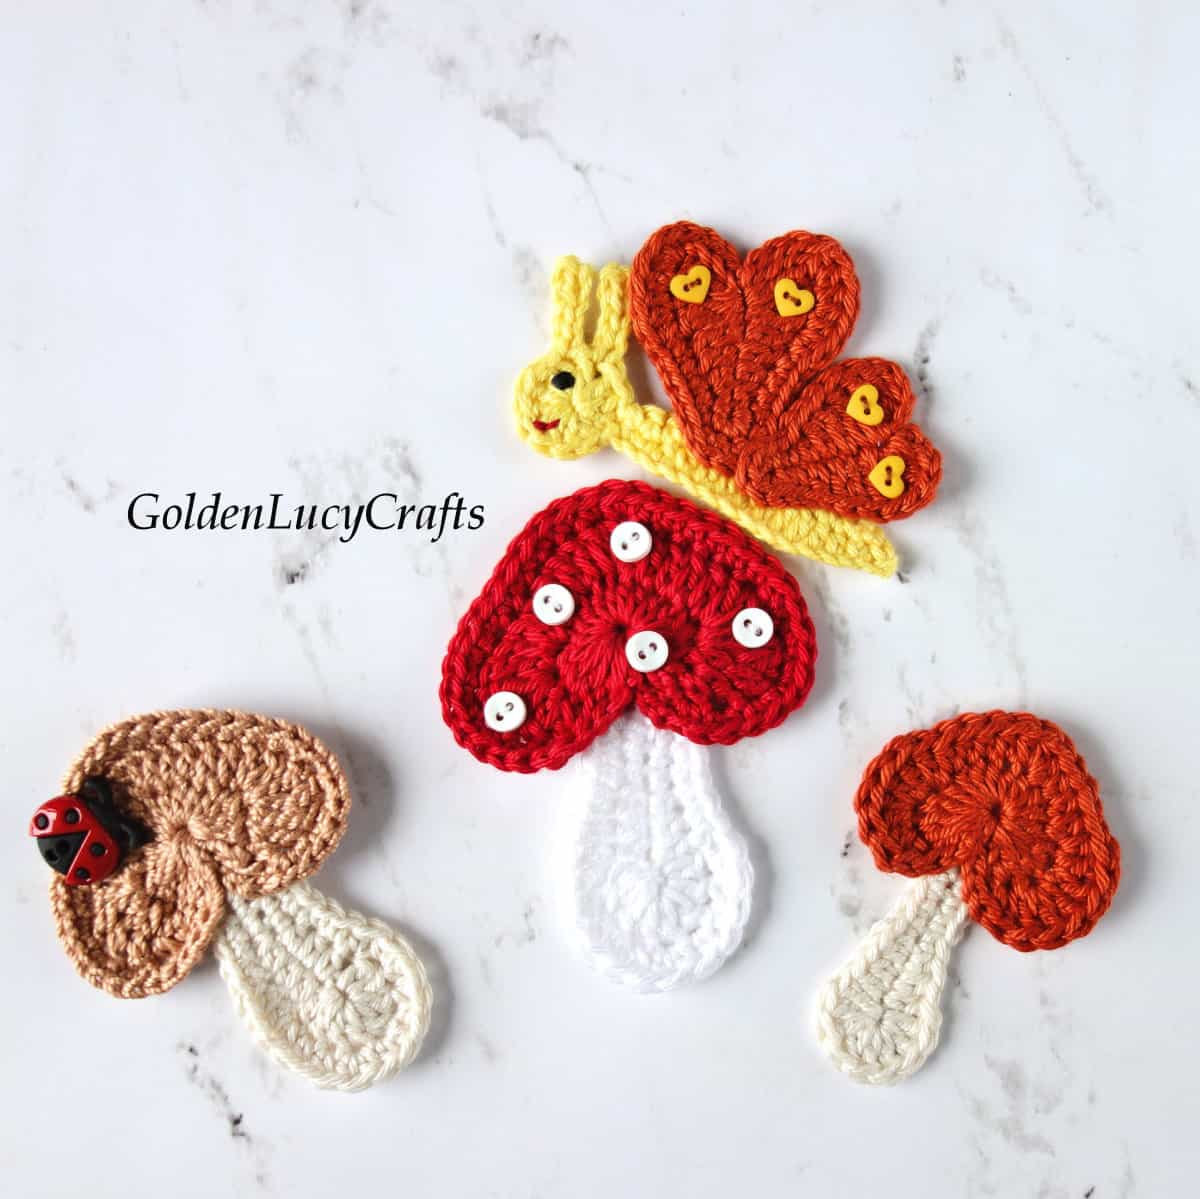 Crochet butterfly and mushrooms applique.